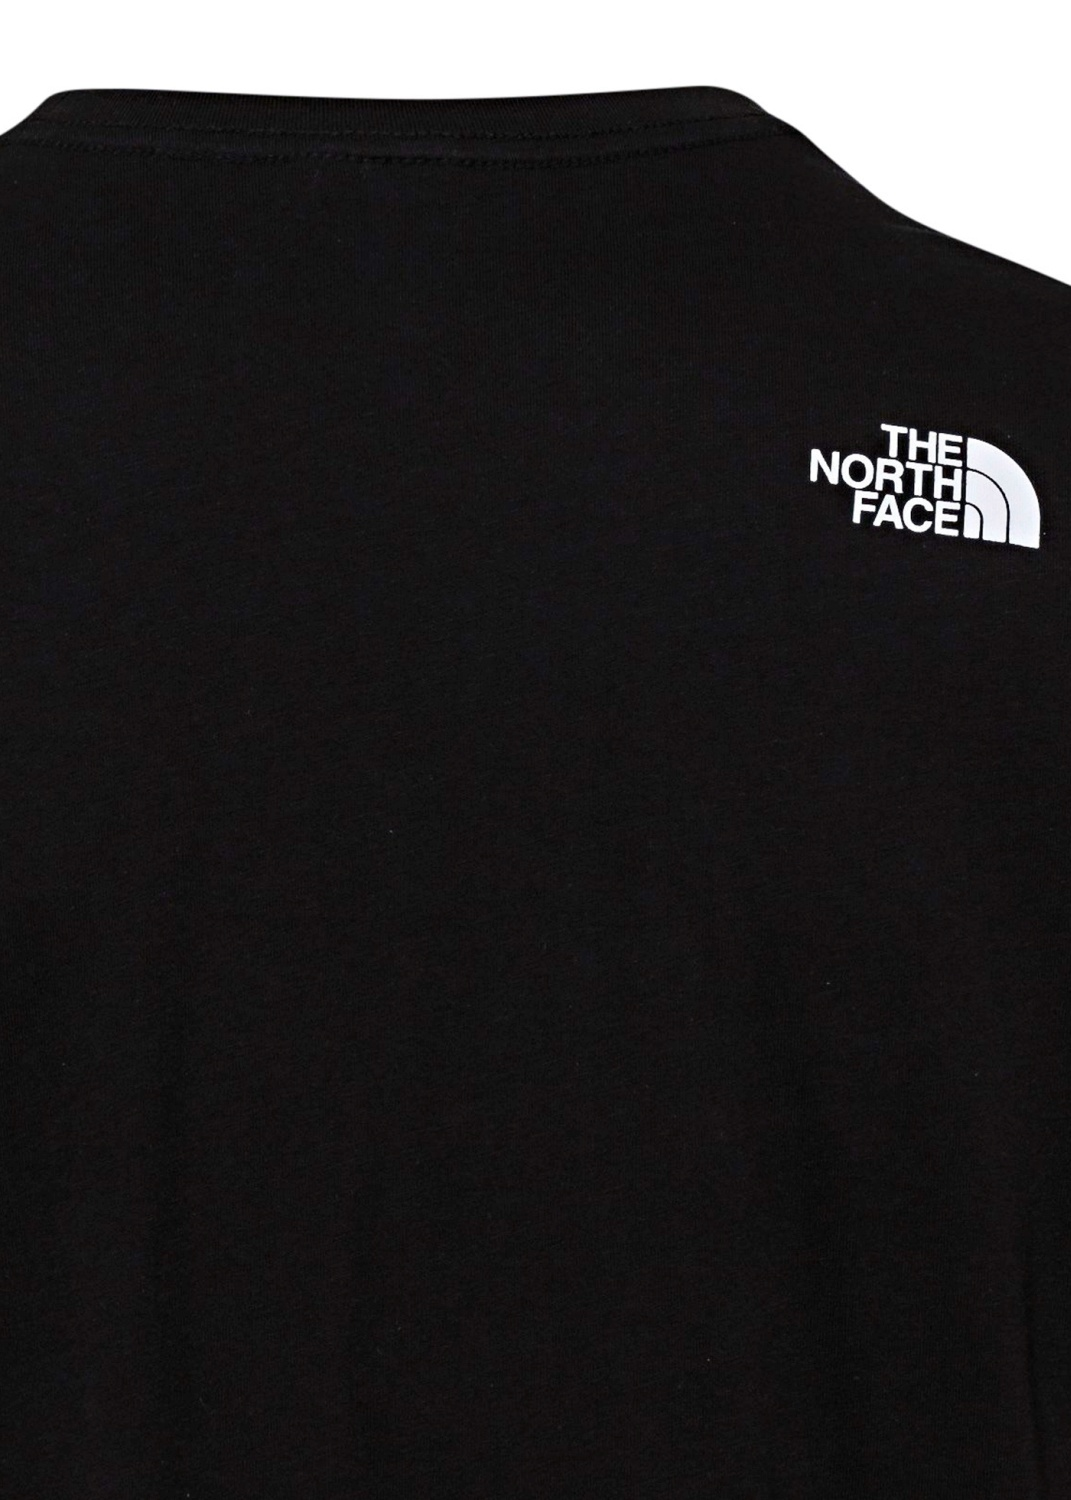 M S/S FINE TEE TNF BLACK image number 3